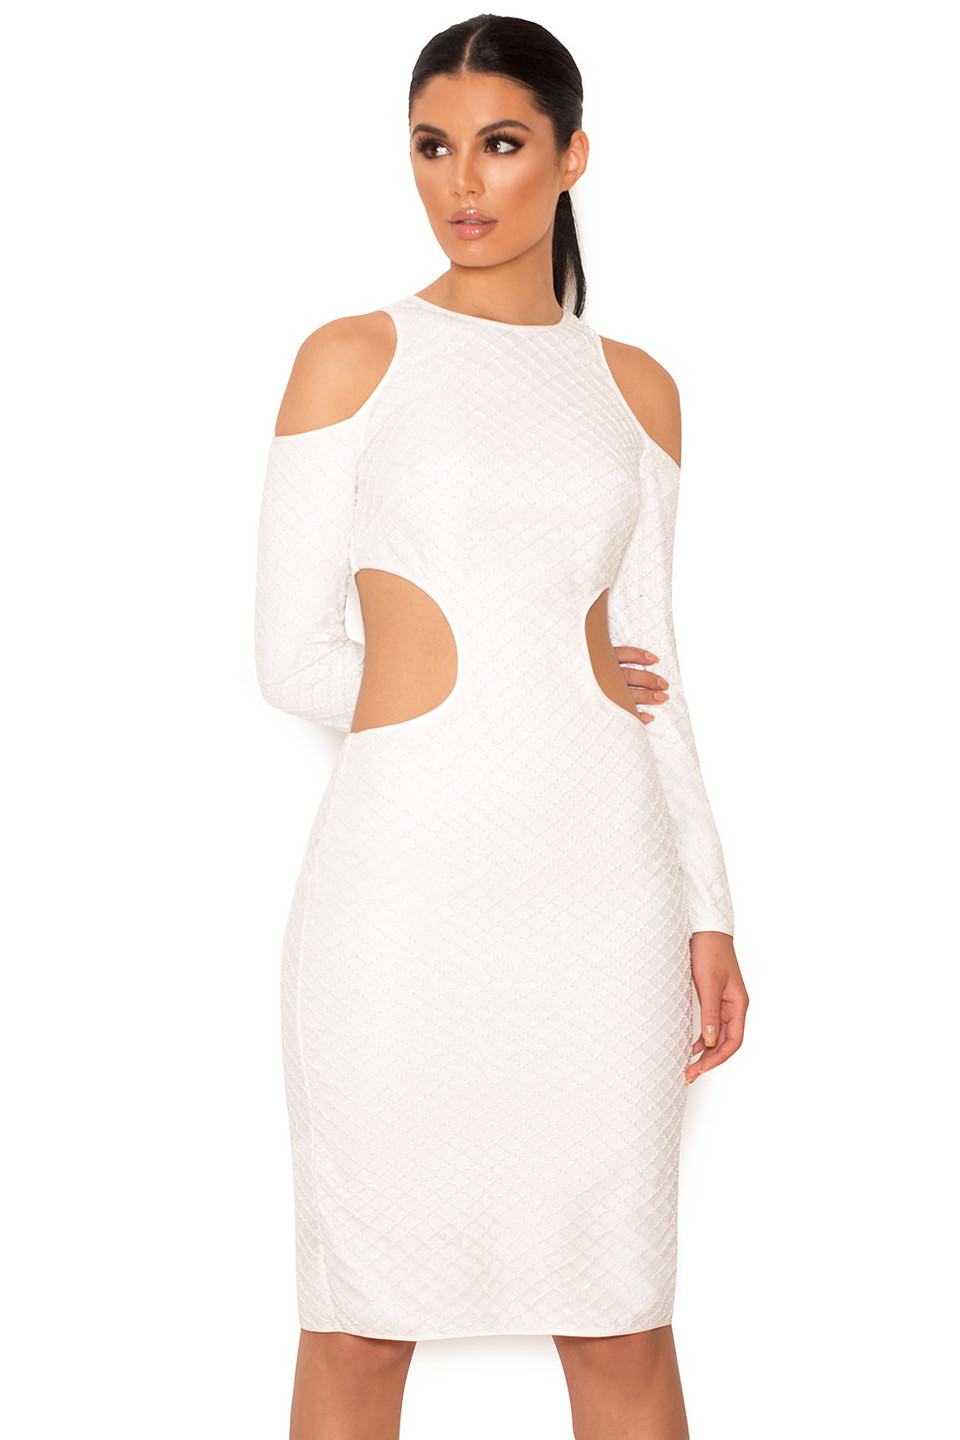 Ellisha Ivory Seed Bead Embellished Cut Out Dress